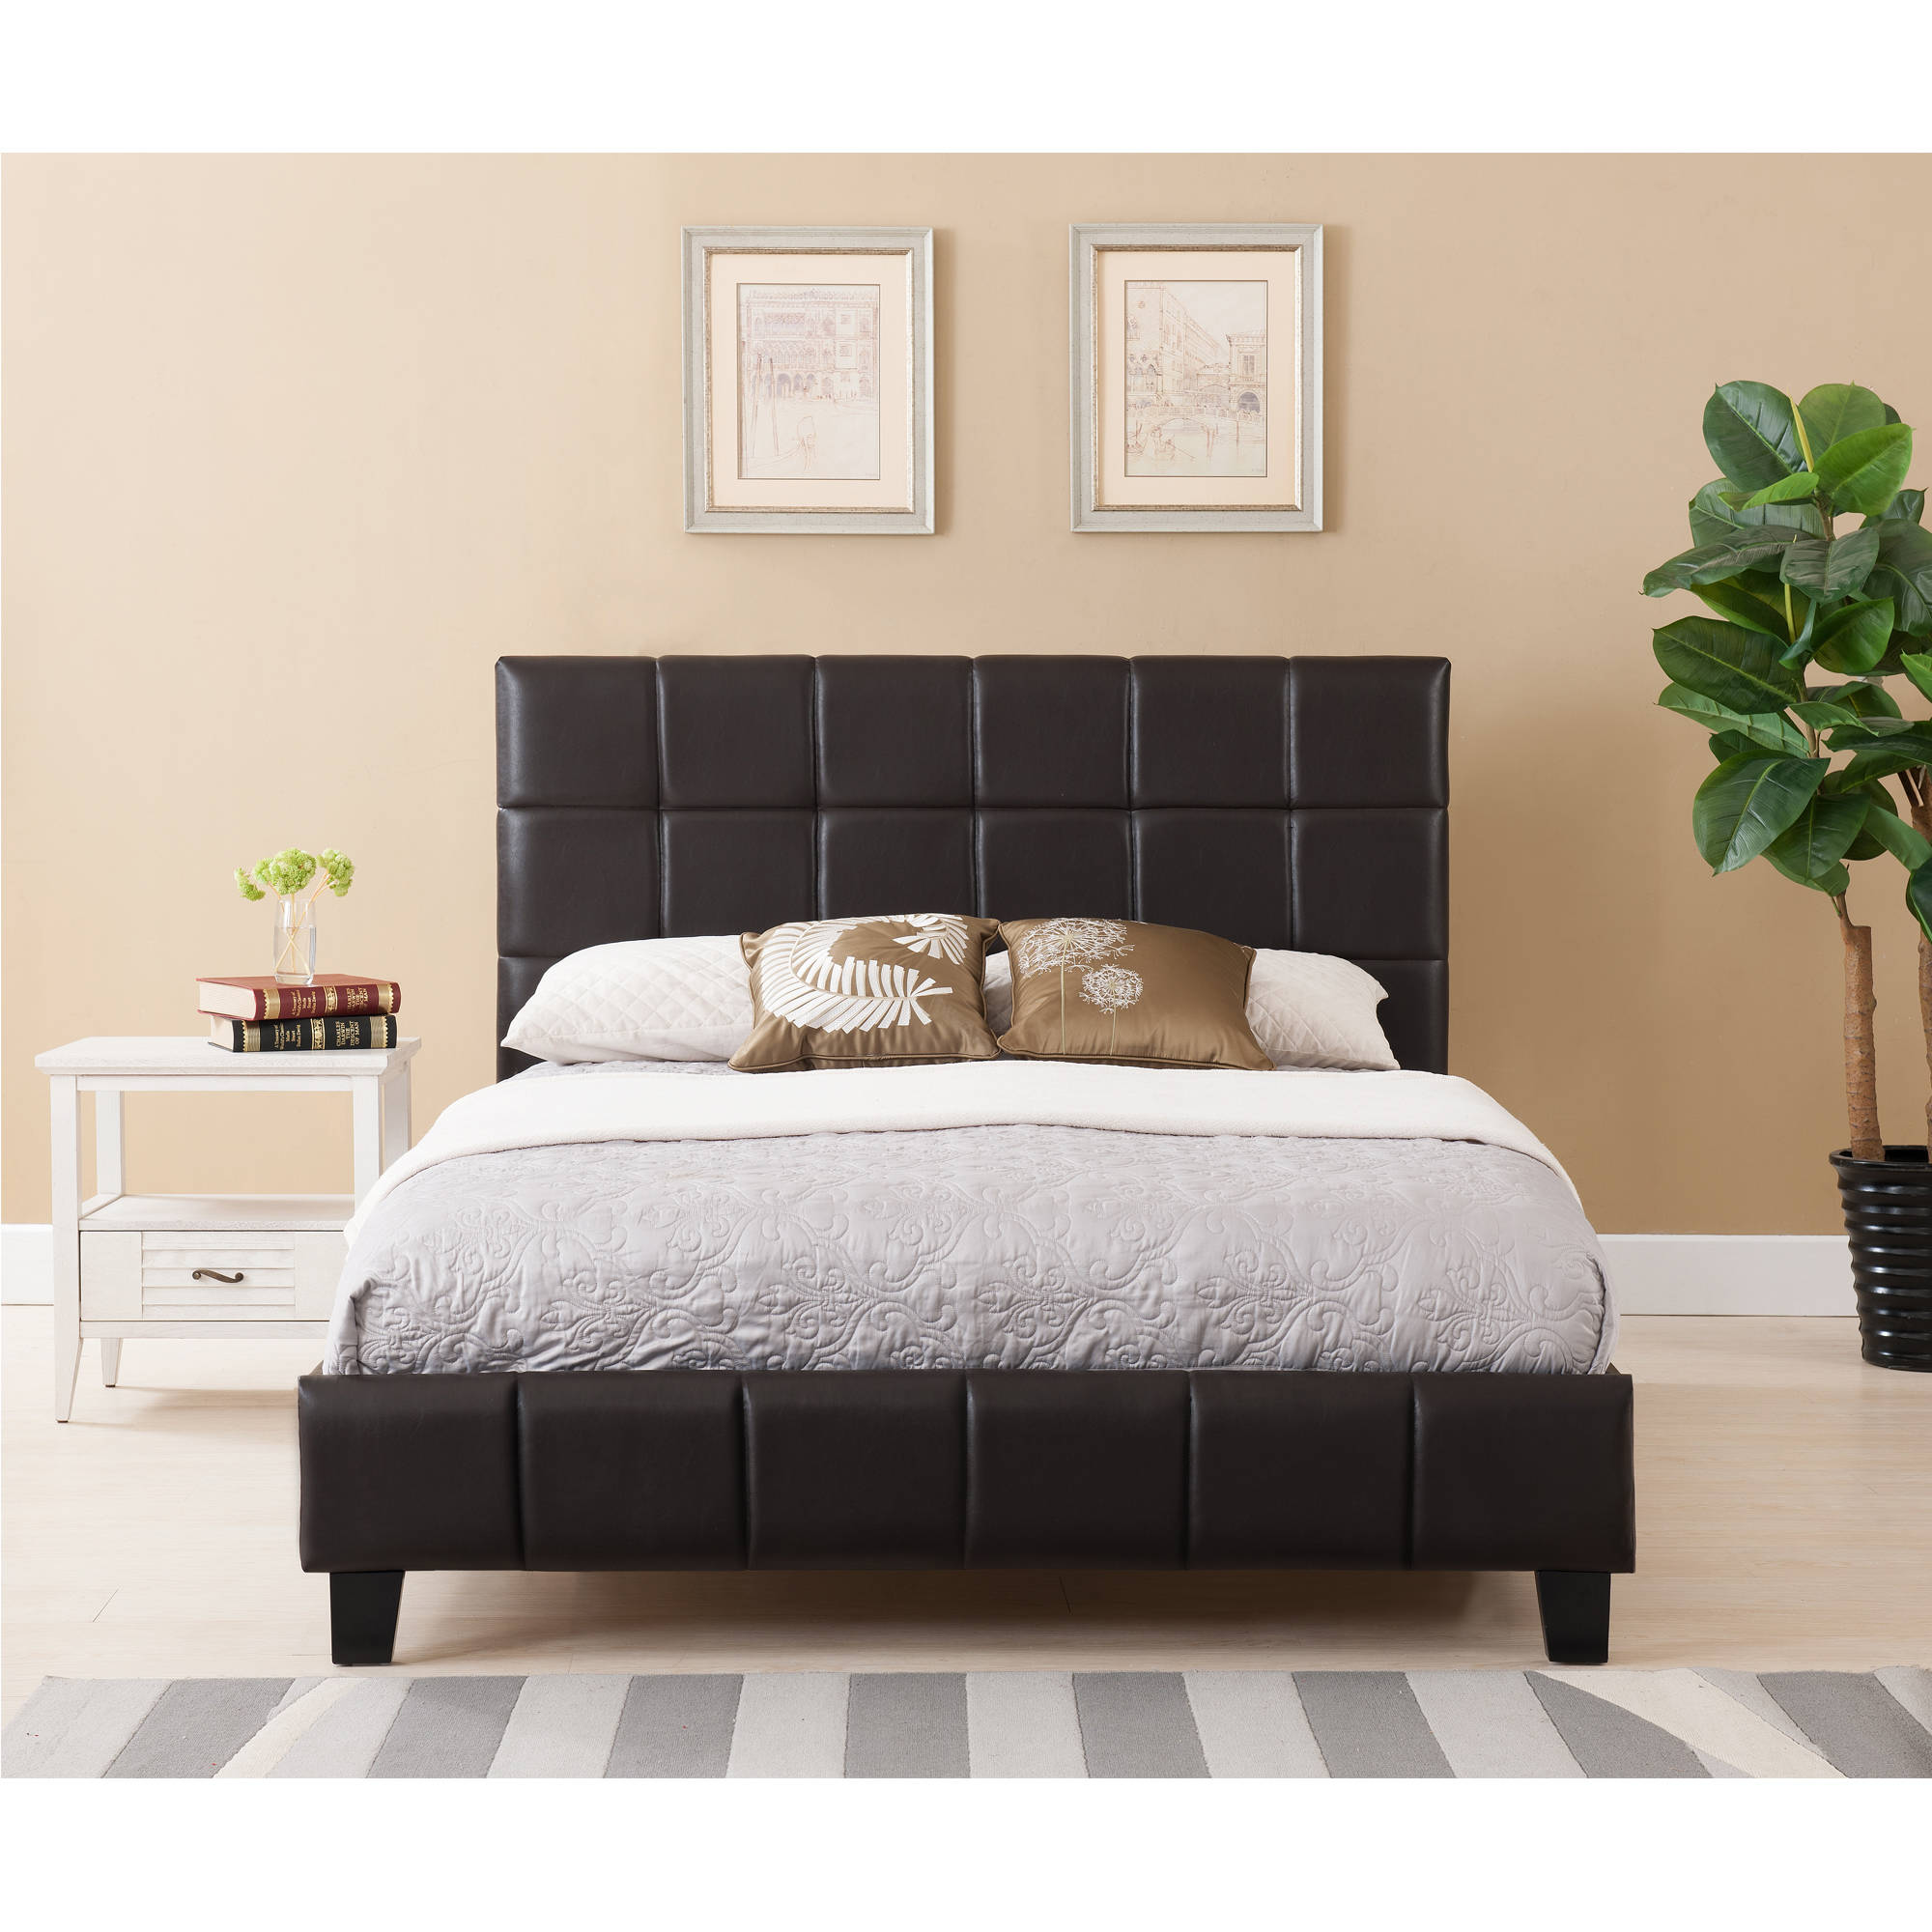 Rossington Queen/King Bed Set, Taylor Brown